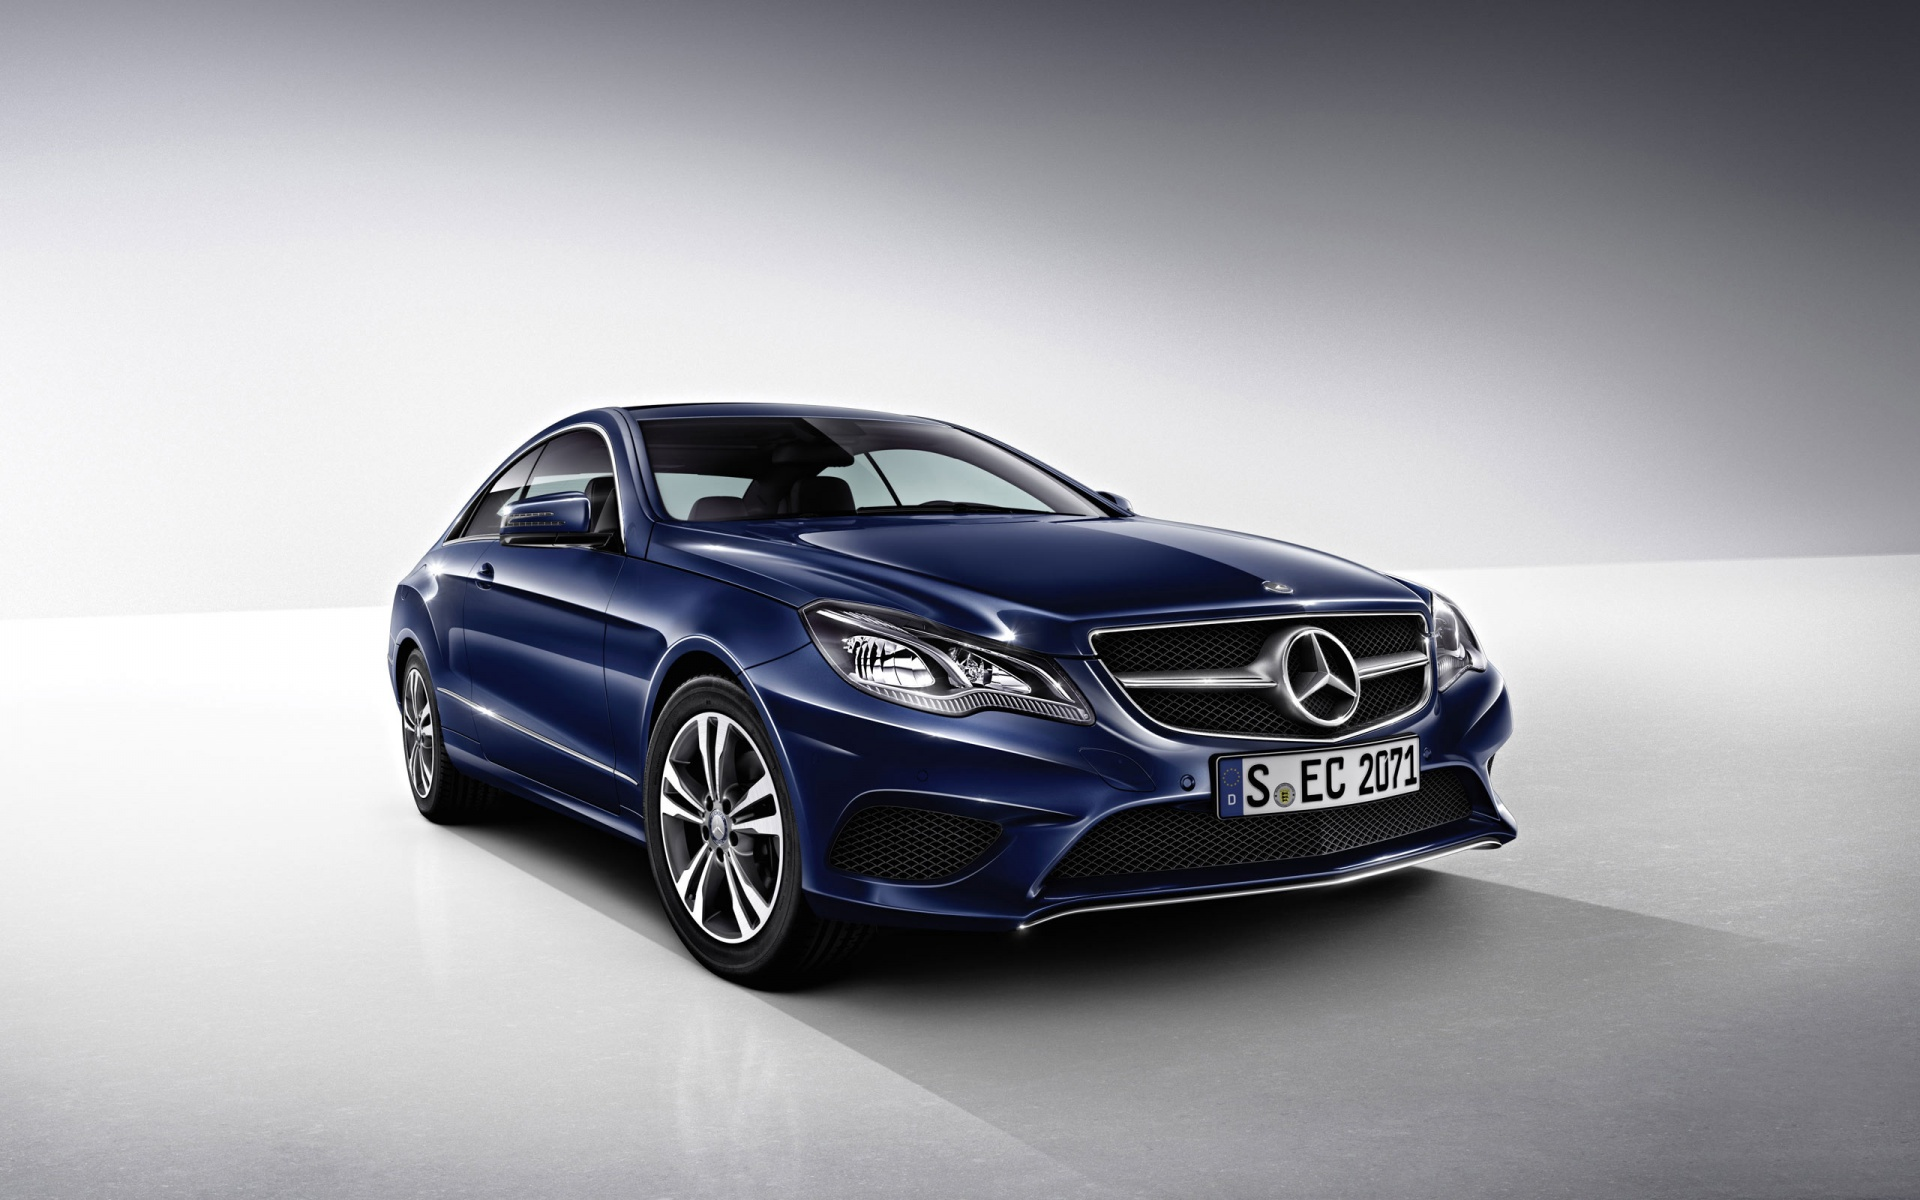 2014 Mercedes Benz E Class Coupe Wallpaper HD Car Wallpapers 1920x1200